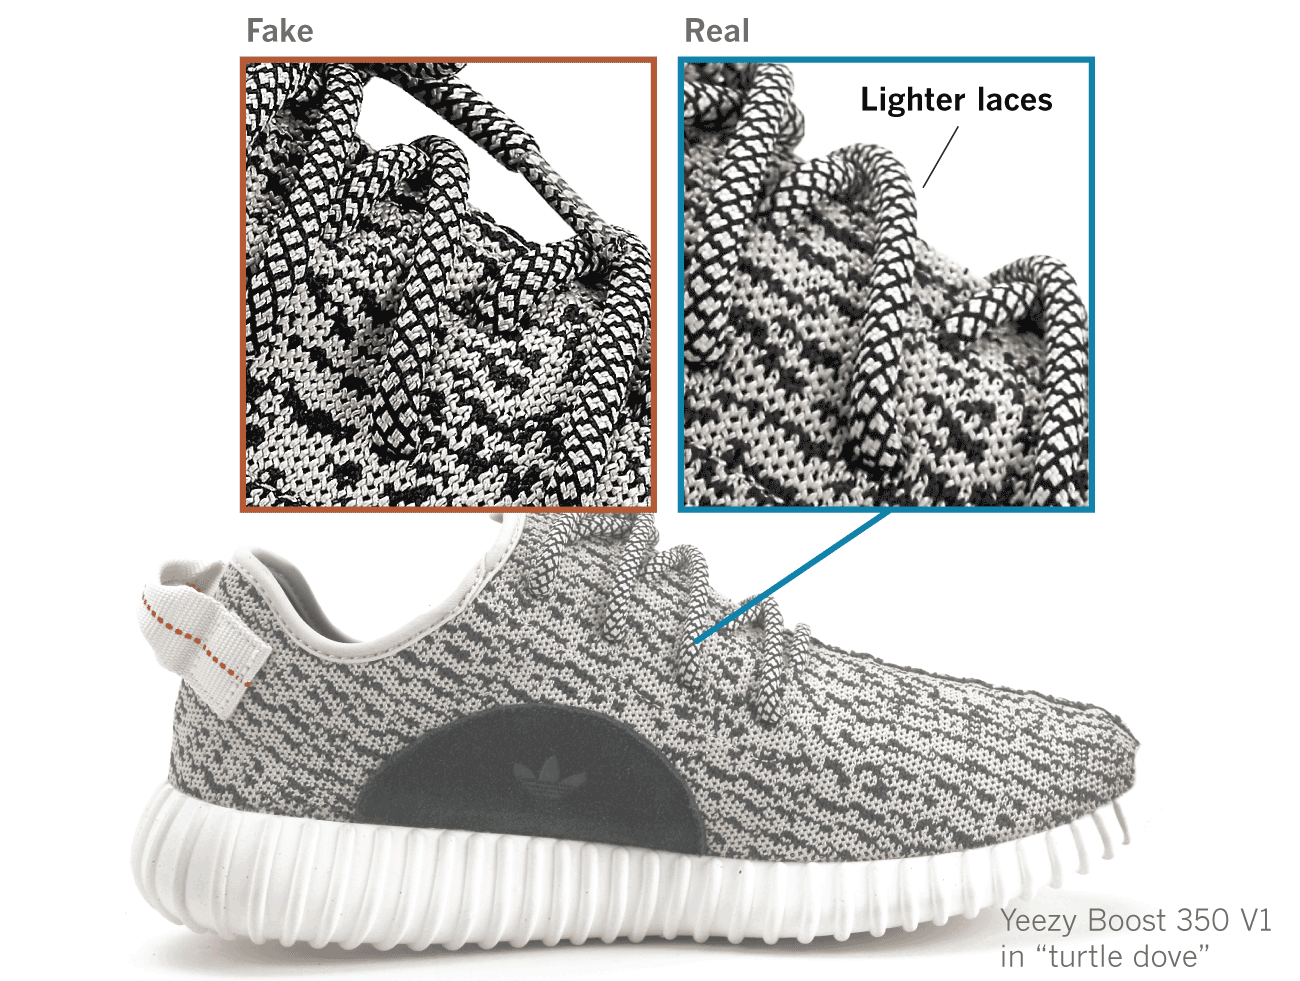 3254319a9 ... Adidas Yeezy has become so sophisticated that even some of the most  astute fans can t tell the difference between a well-made fake and the real  deal.